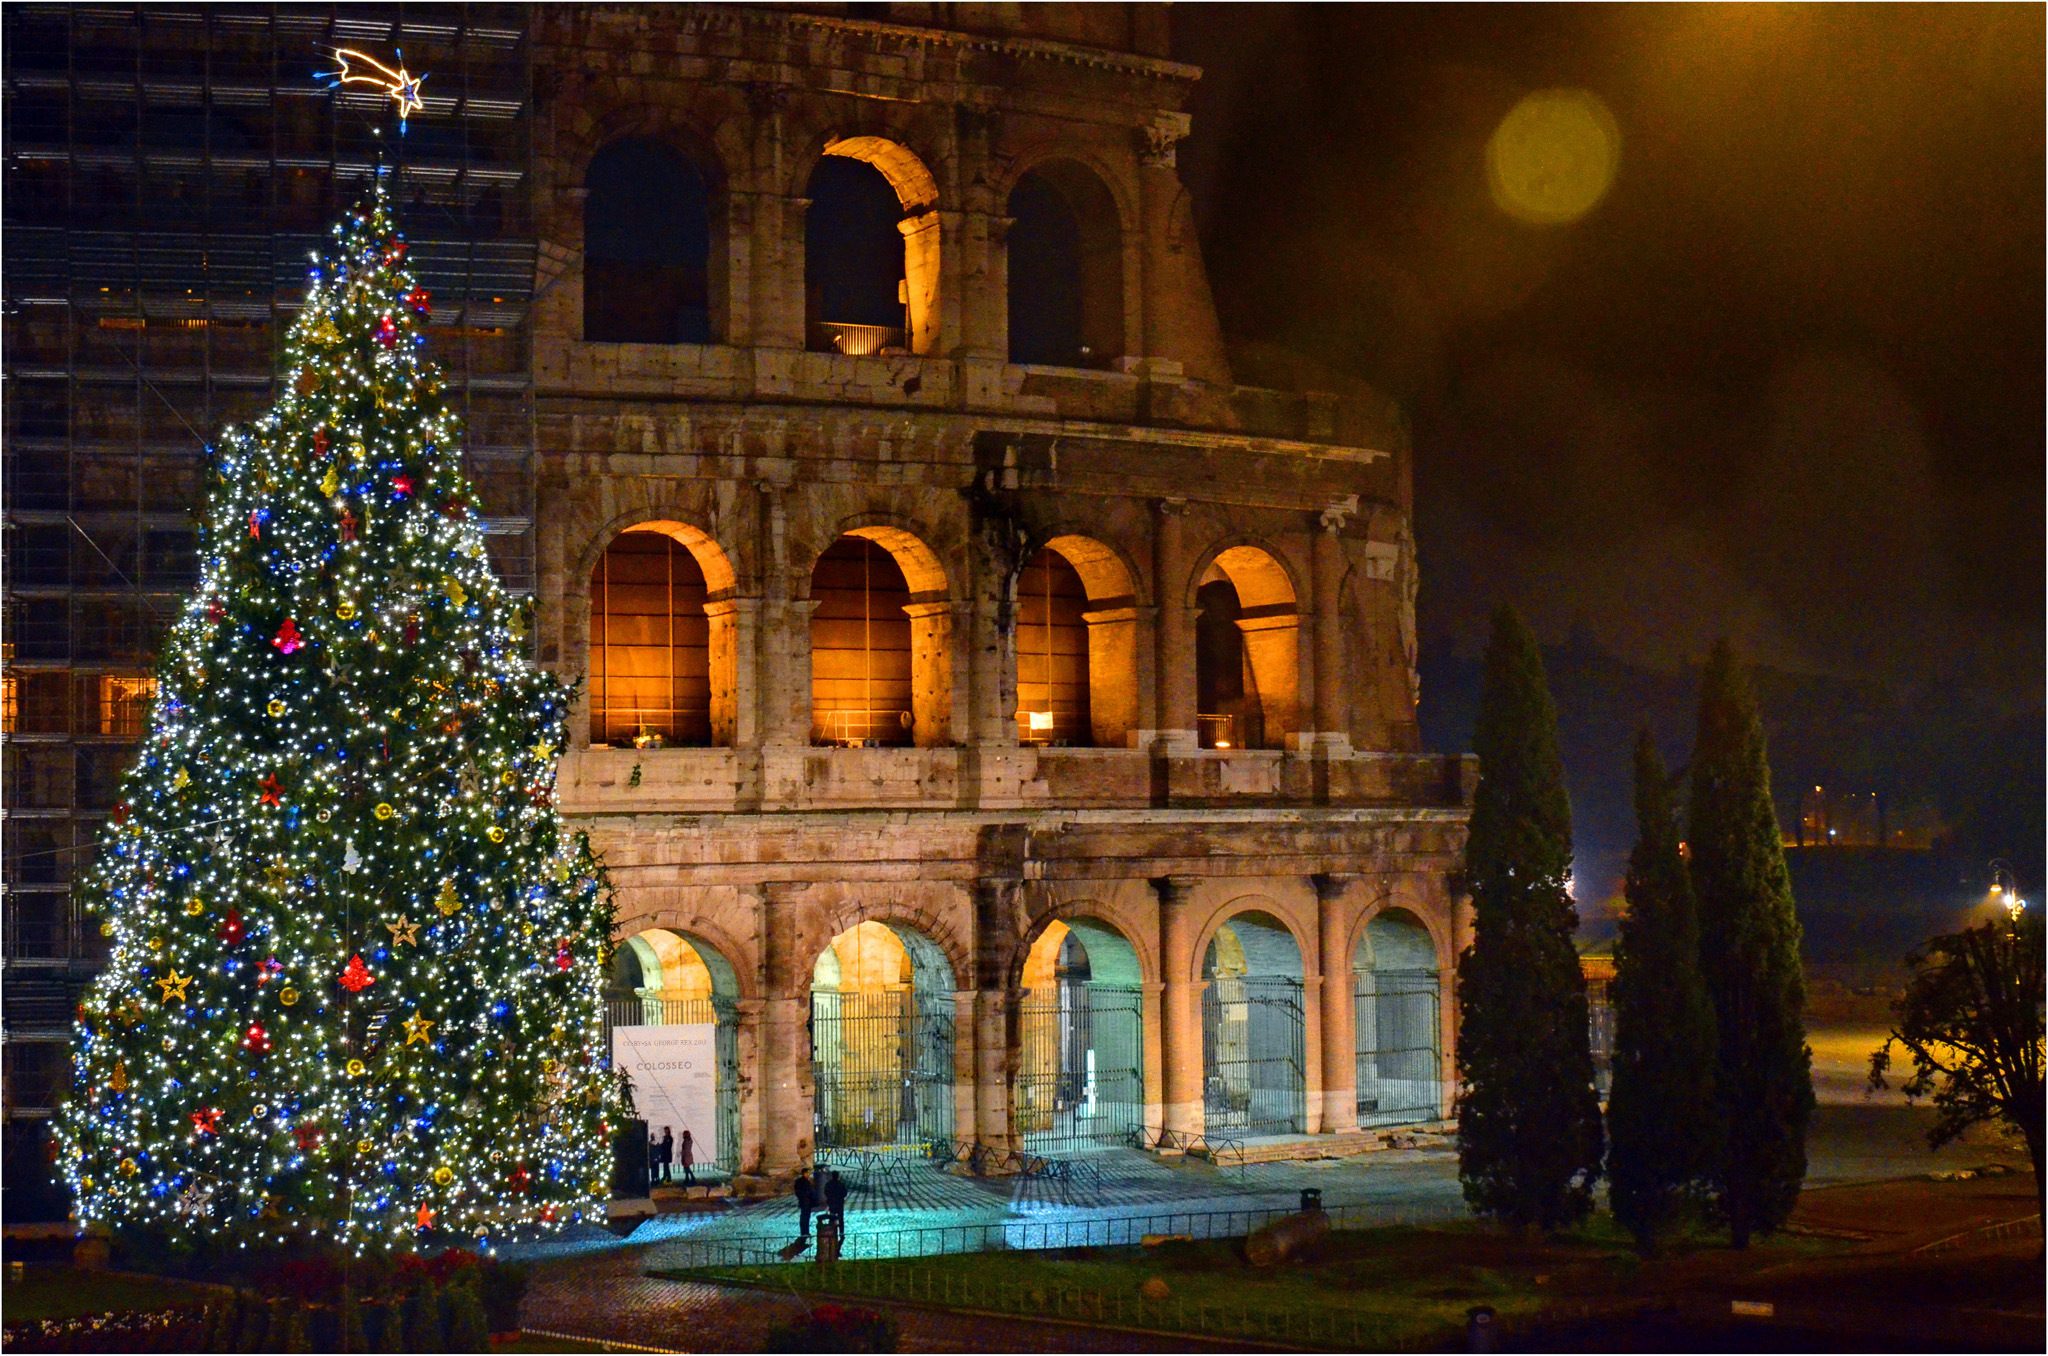 Colosseum Christmas Tree, Italy in winter